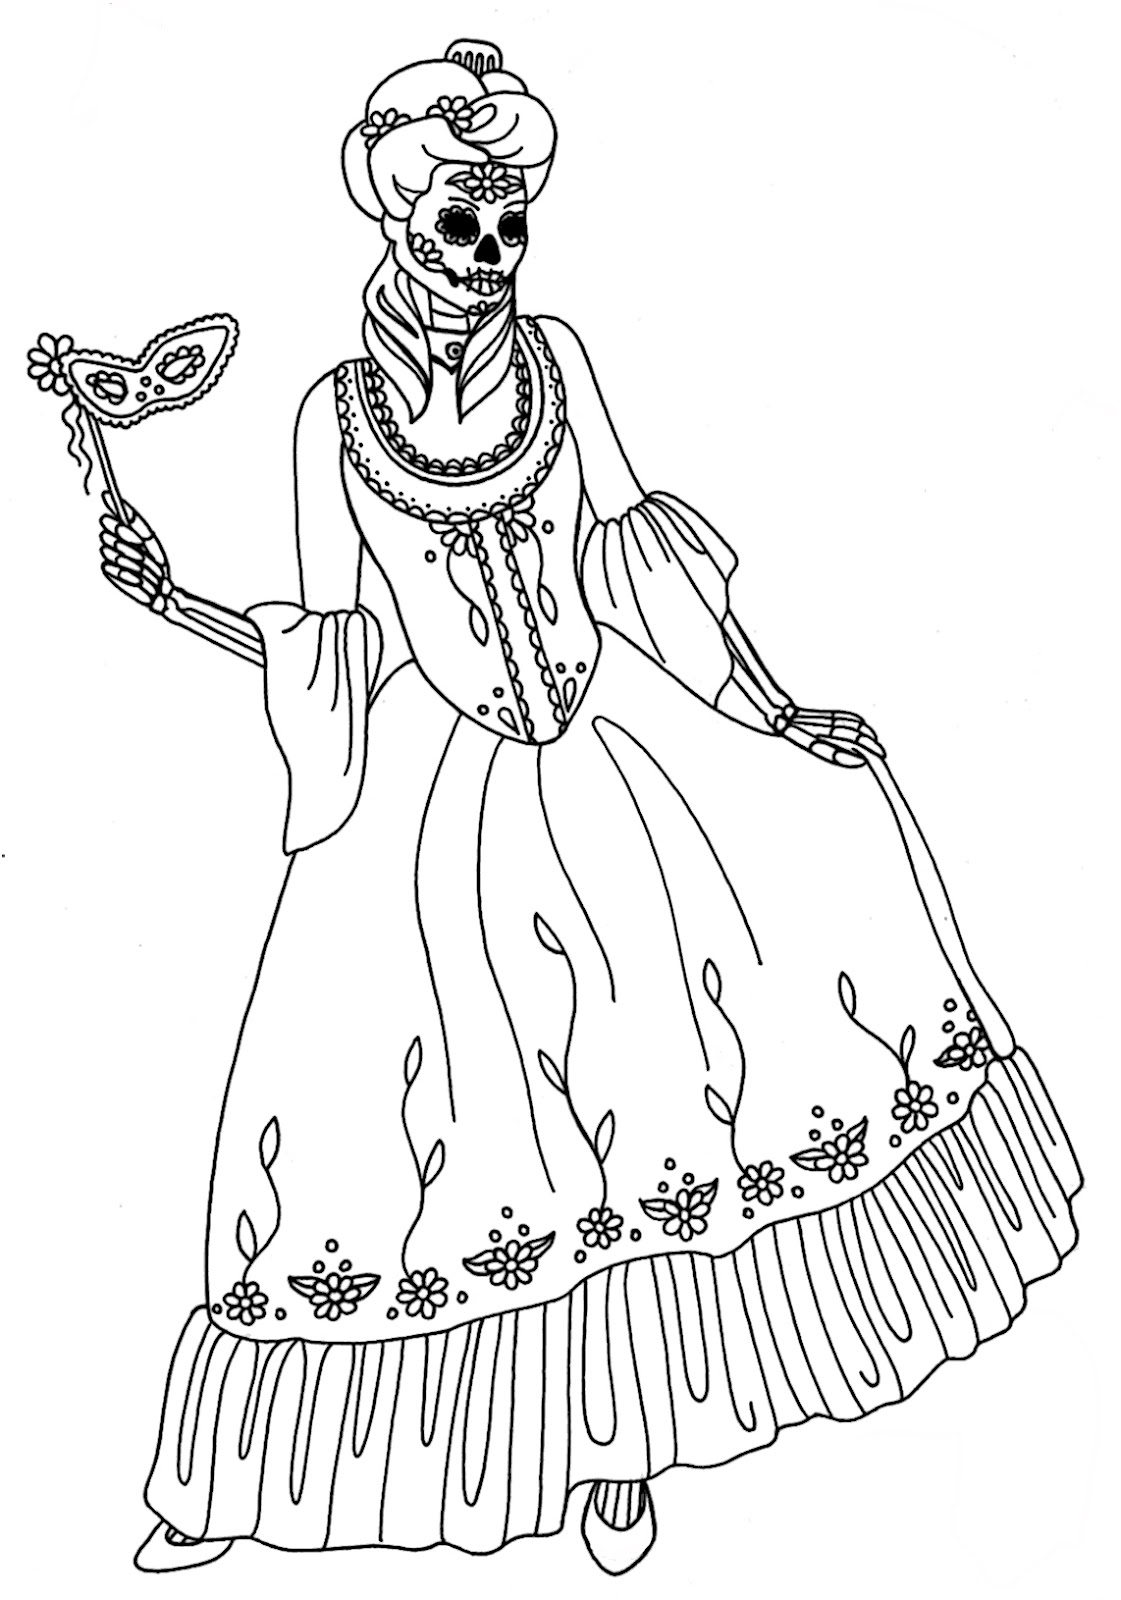 free printable skeleton coloring pages - yucca flats n m october 2012